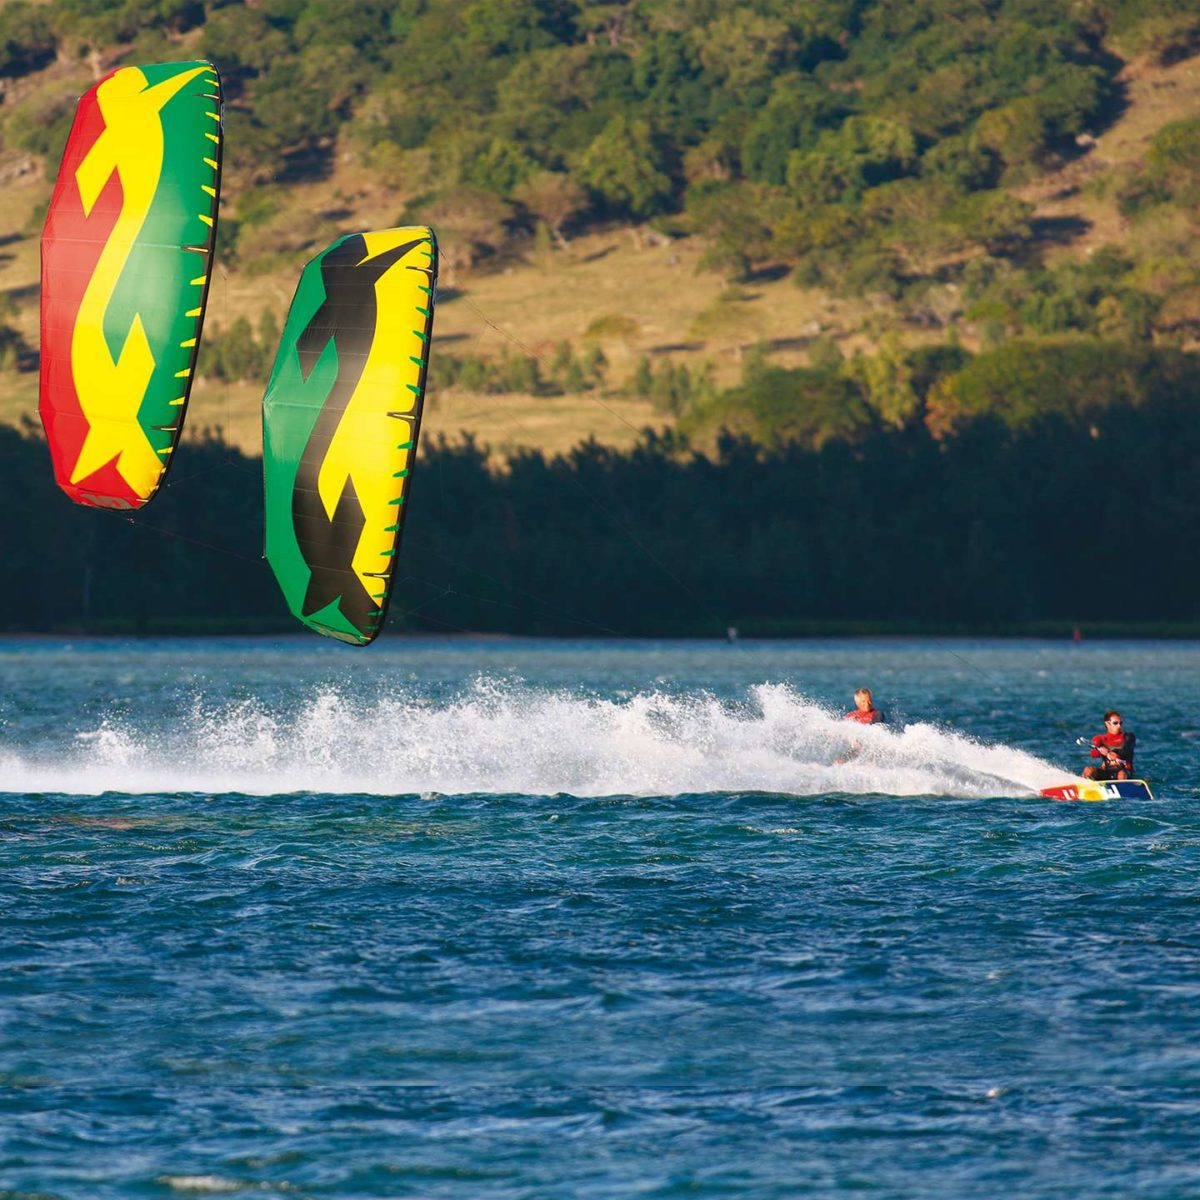 Kitesurfing and Kiteboarding - Kiteboarding Lessons Learned